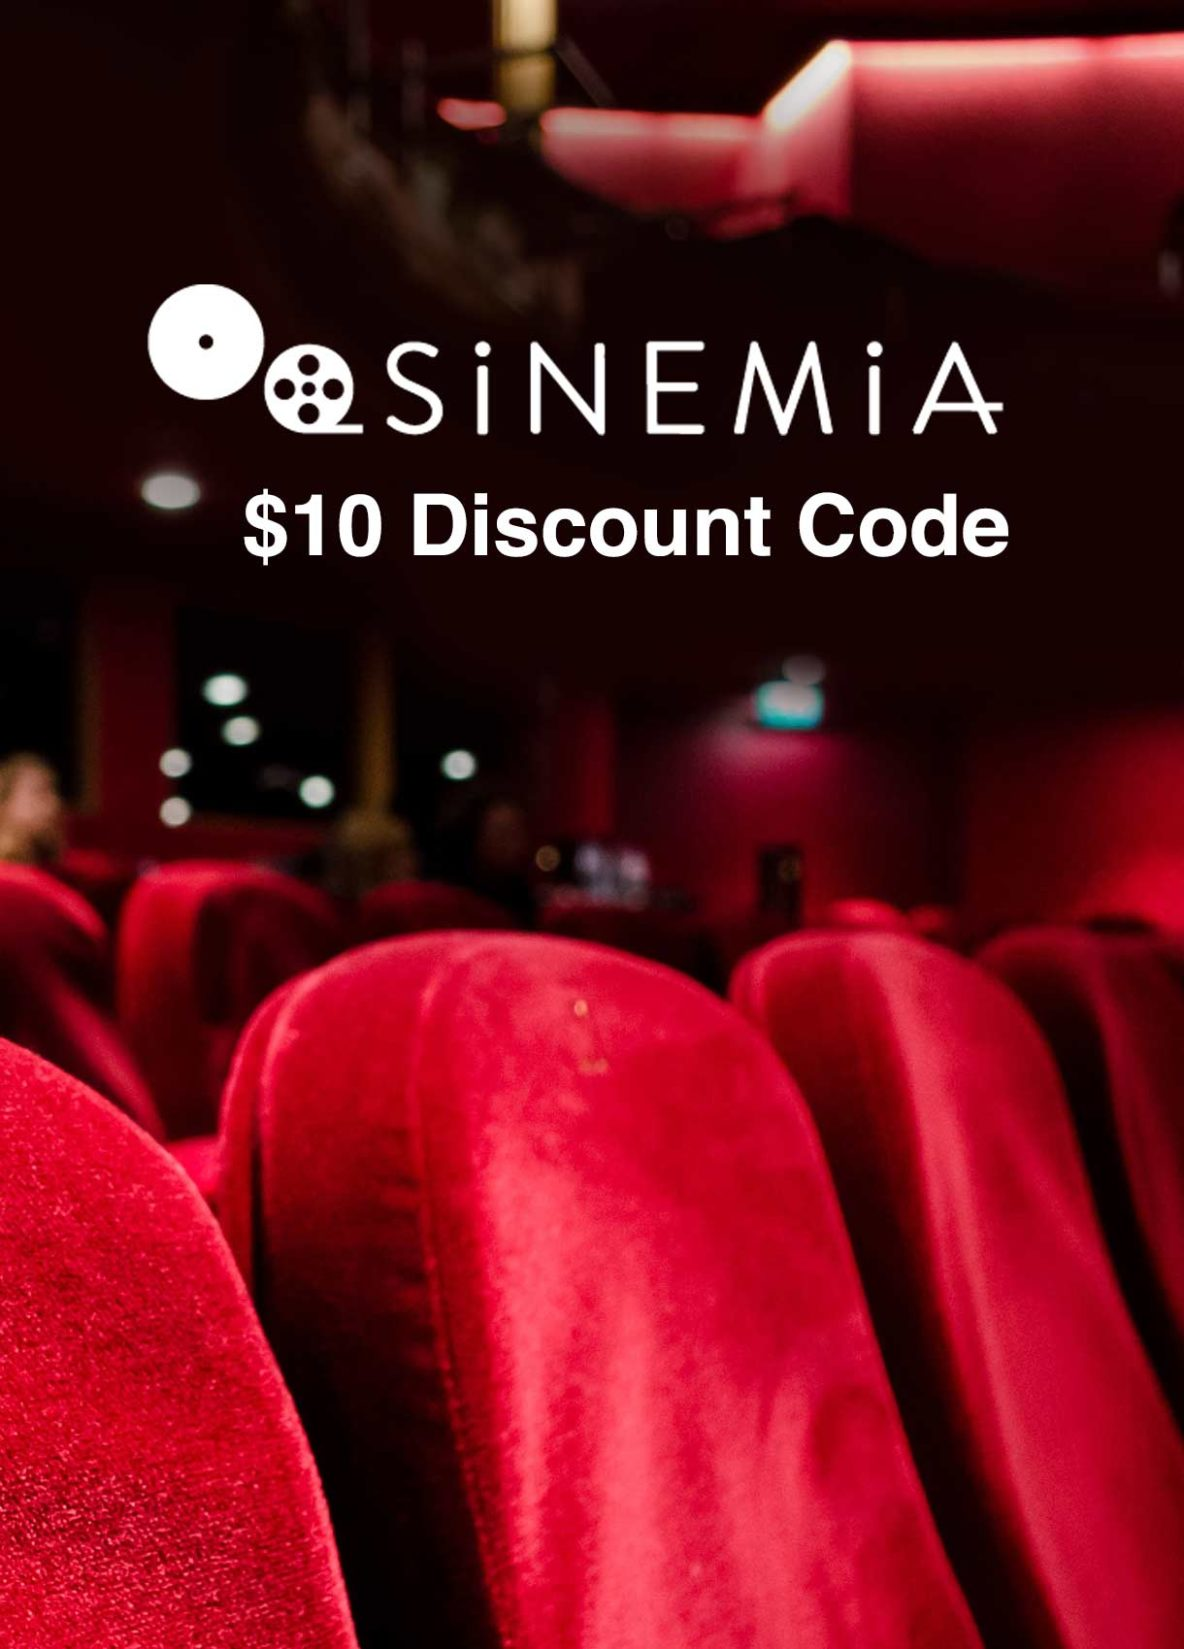 Use Sinemia Promo Code for a $10 Movie Theater Discount